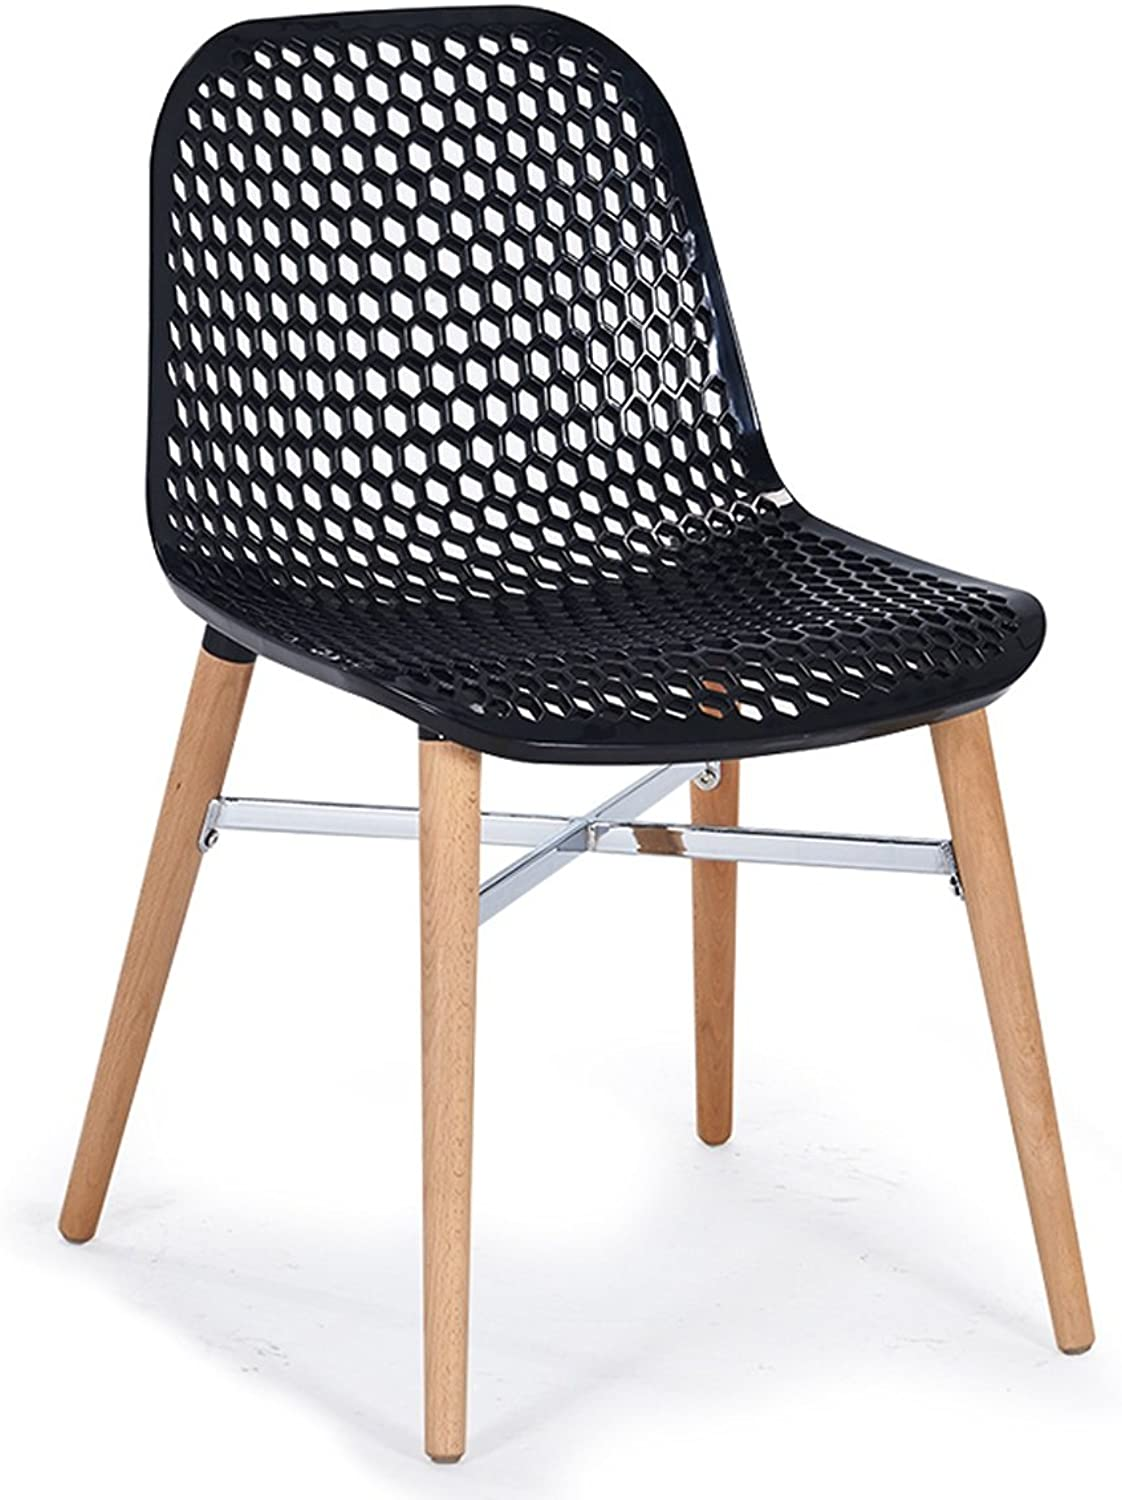 LRW Modern Minimalist Chairs, Fashion Restaurants, Chairs, Cafes, Leisure Bar Chairs, Dining Chairs.